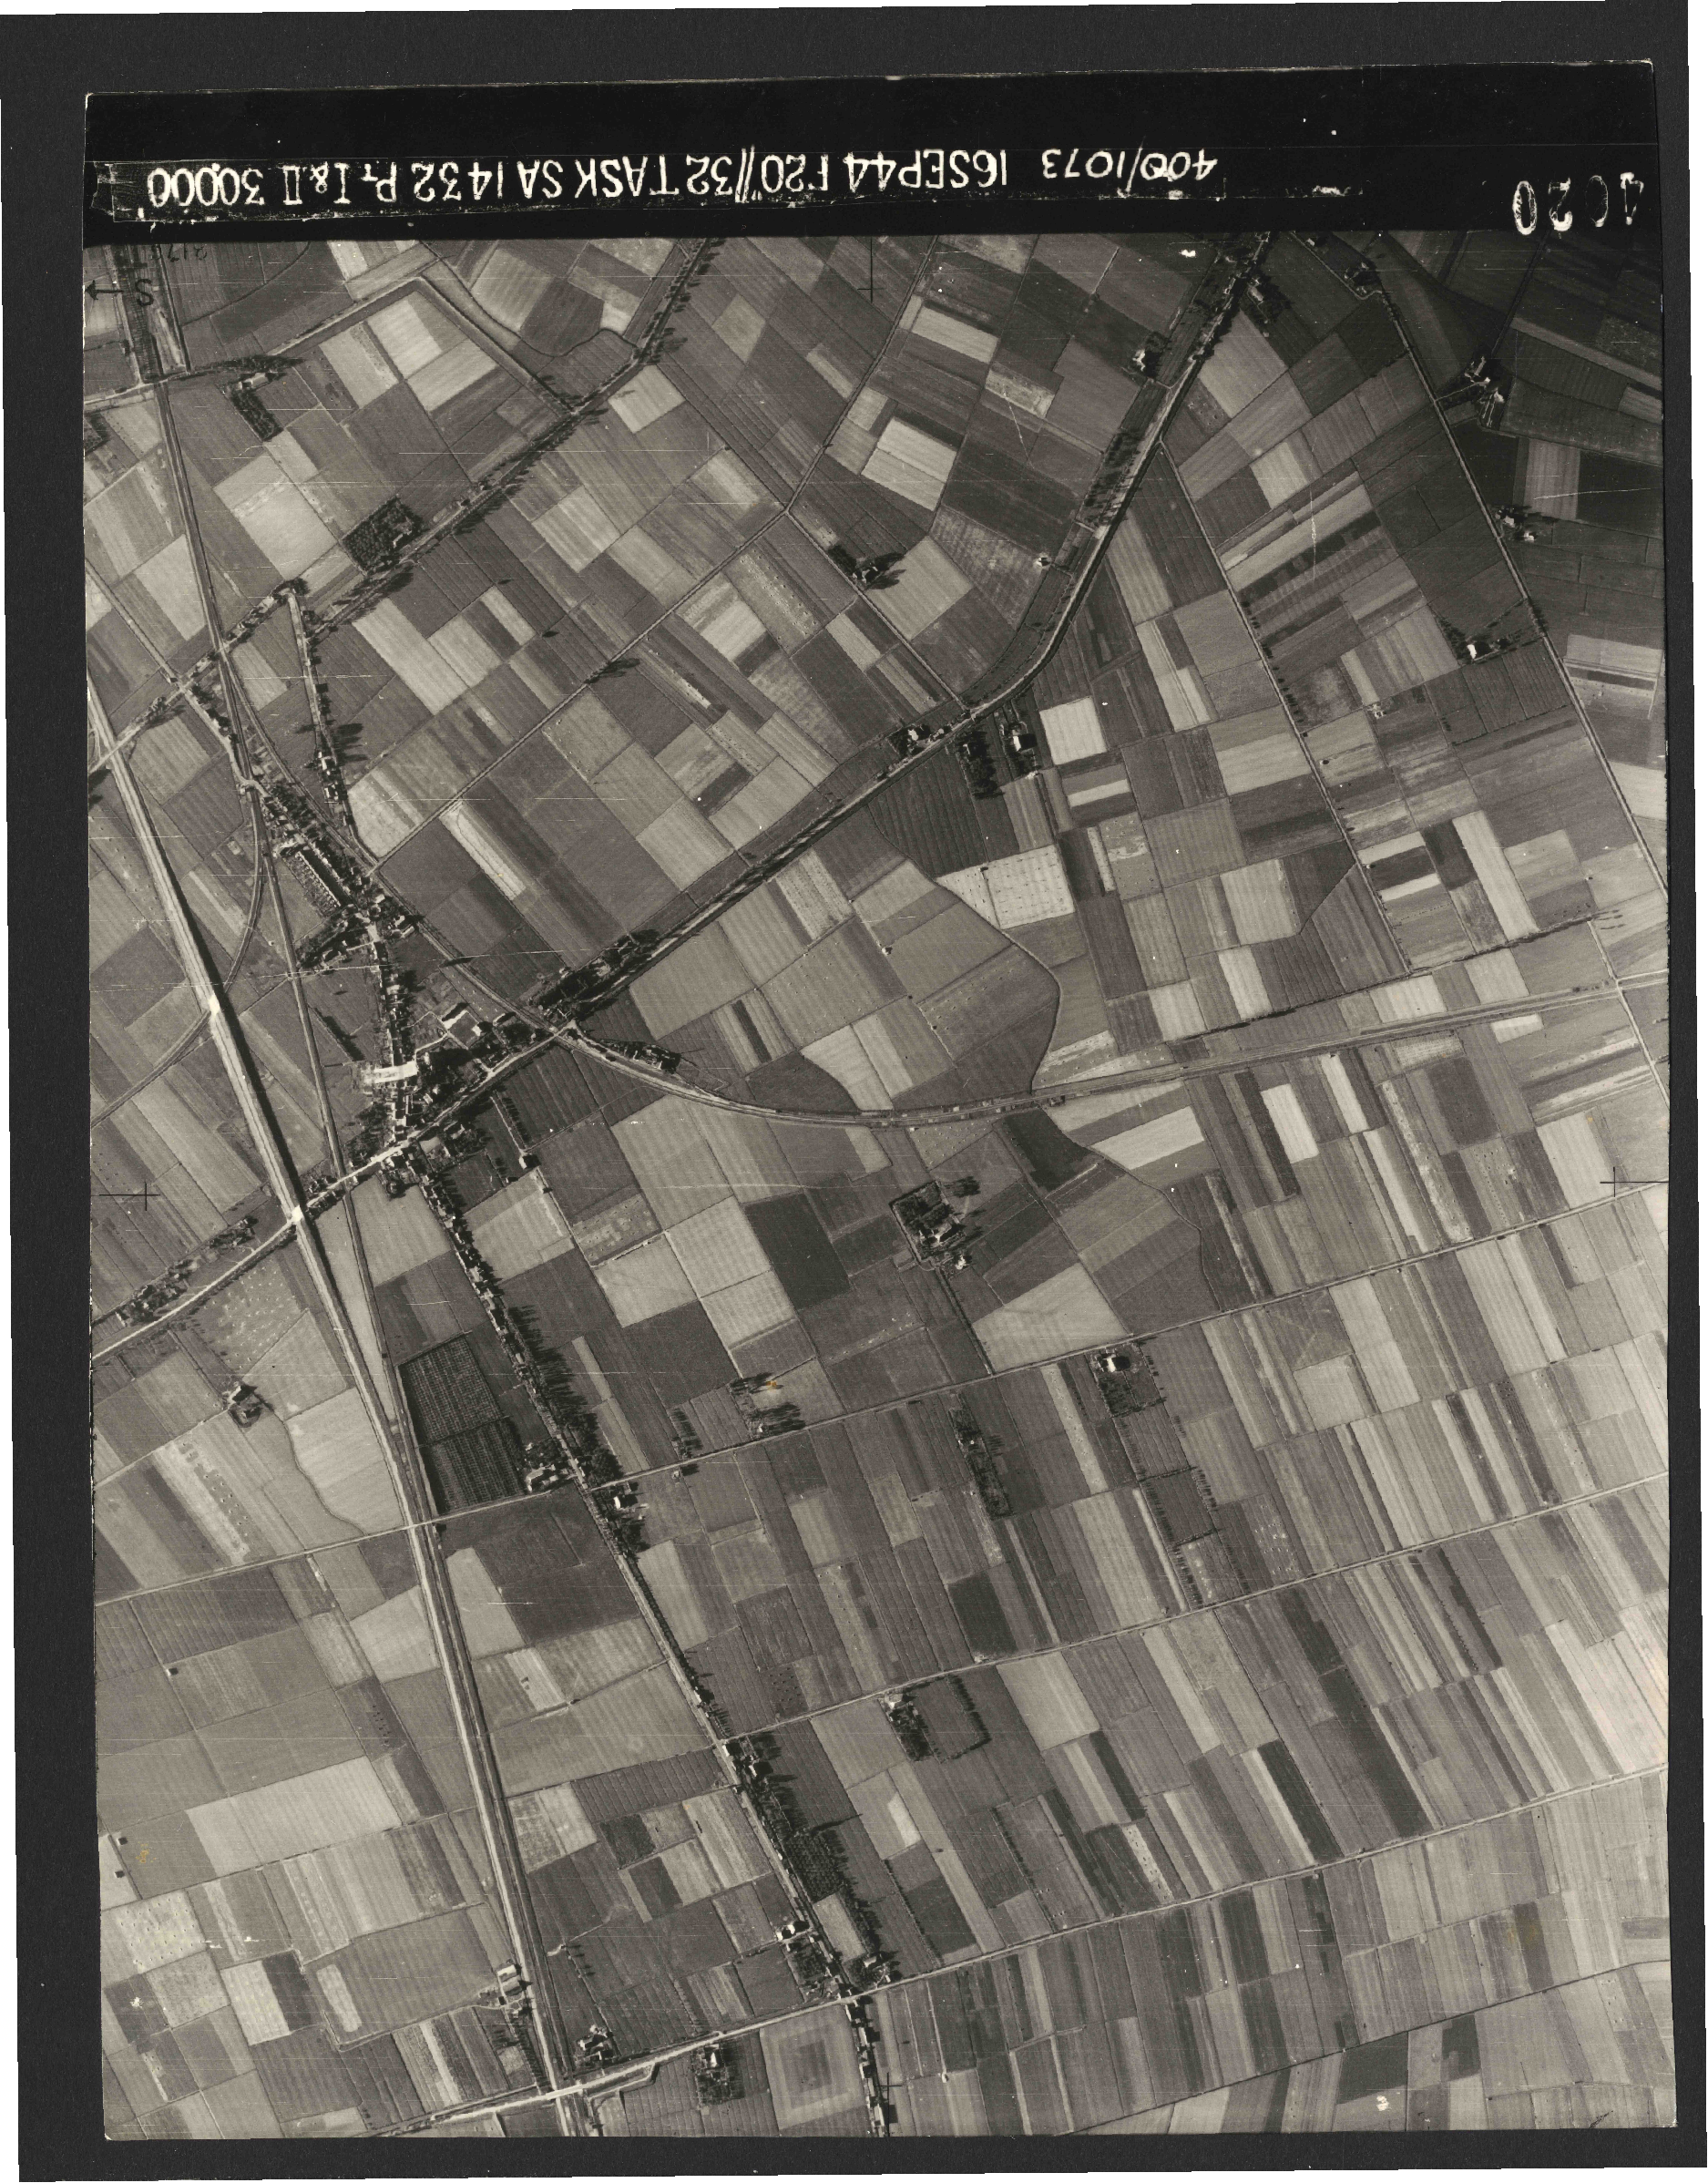 Collection RAF aerial photos 1940-1945 - flight 013, run 09, photo 4020